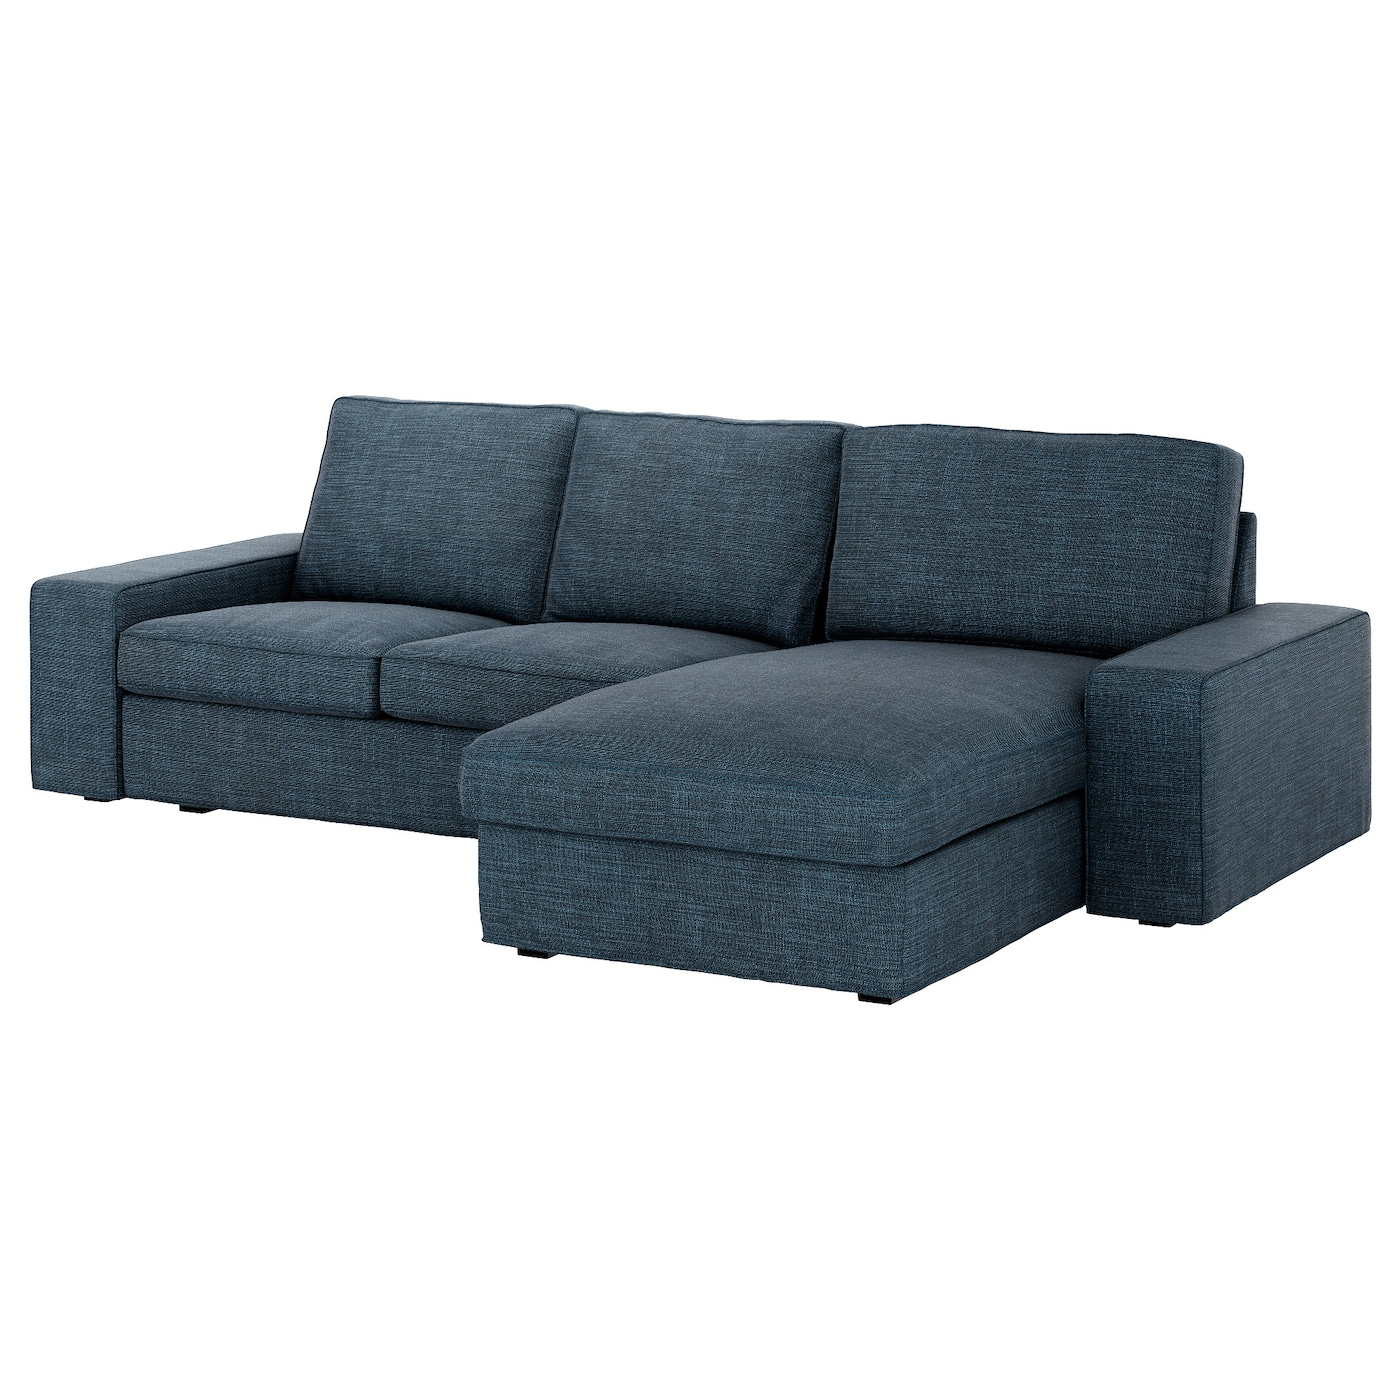 Kivik Two Seat Sofa And Chaise Longue Hillared Dark Blue Ikea